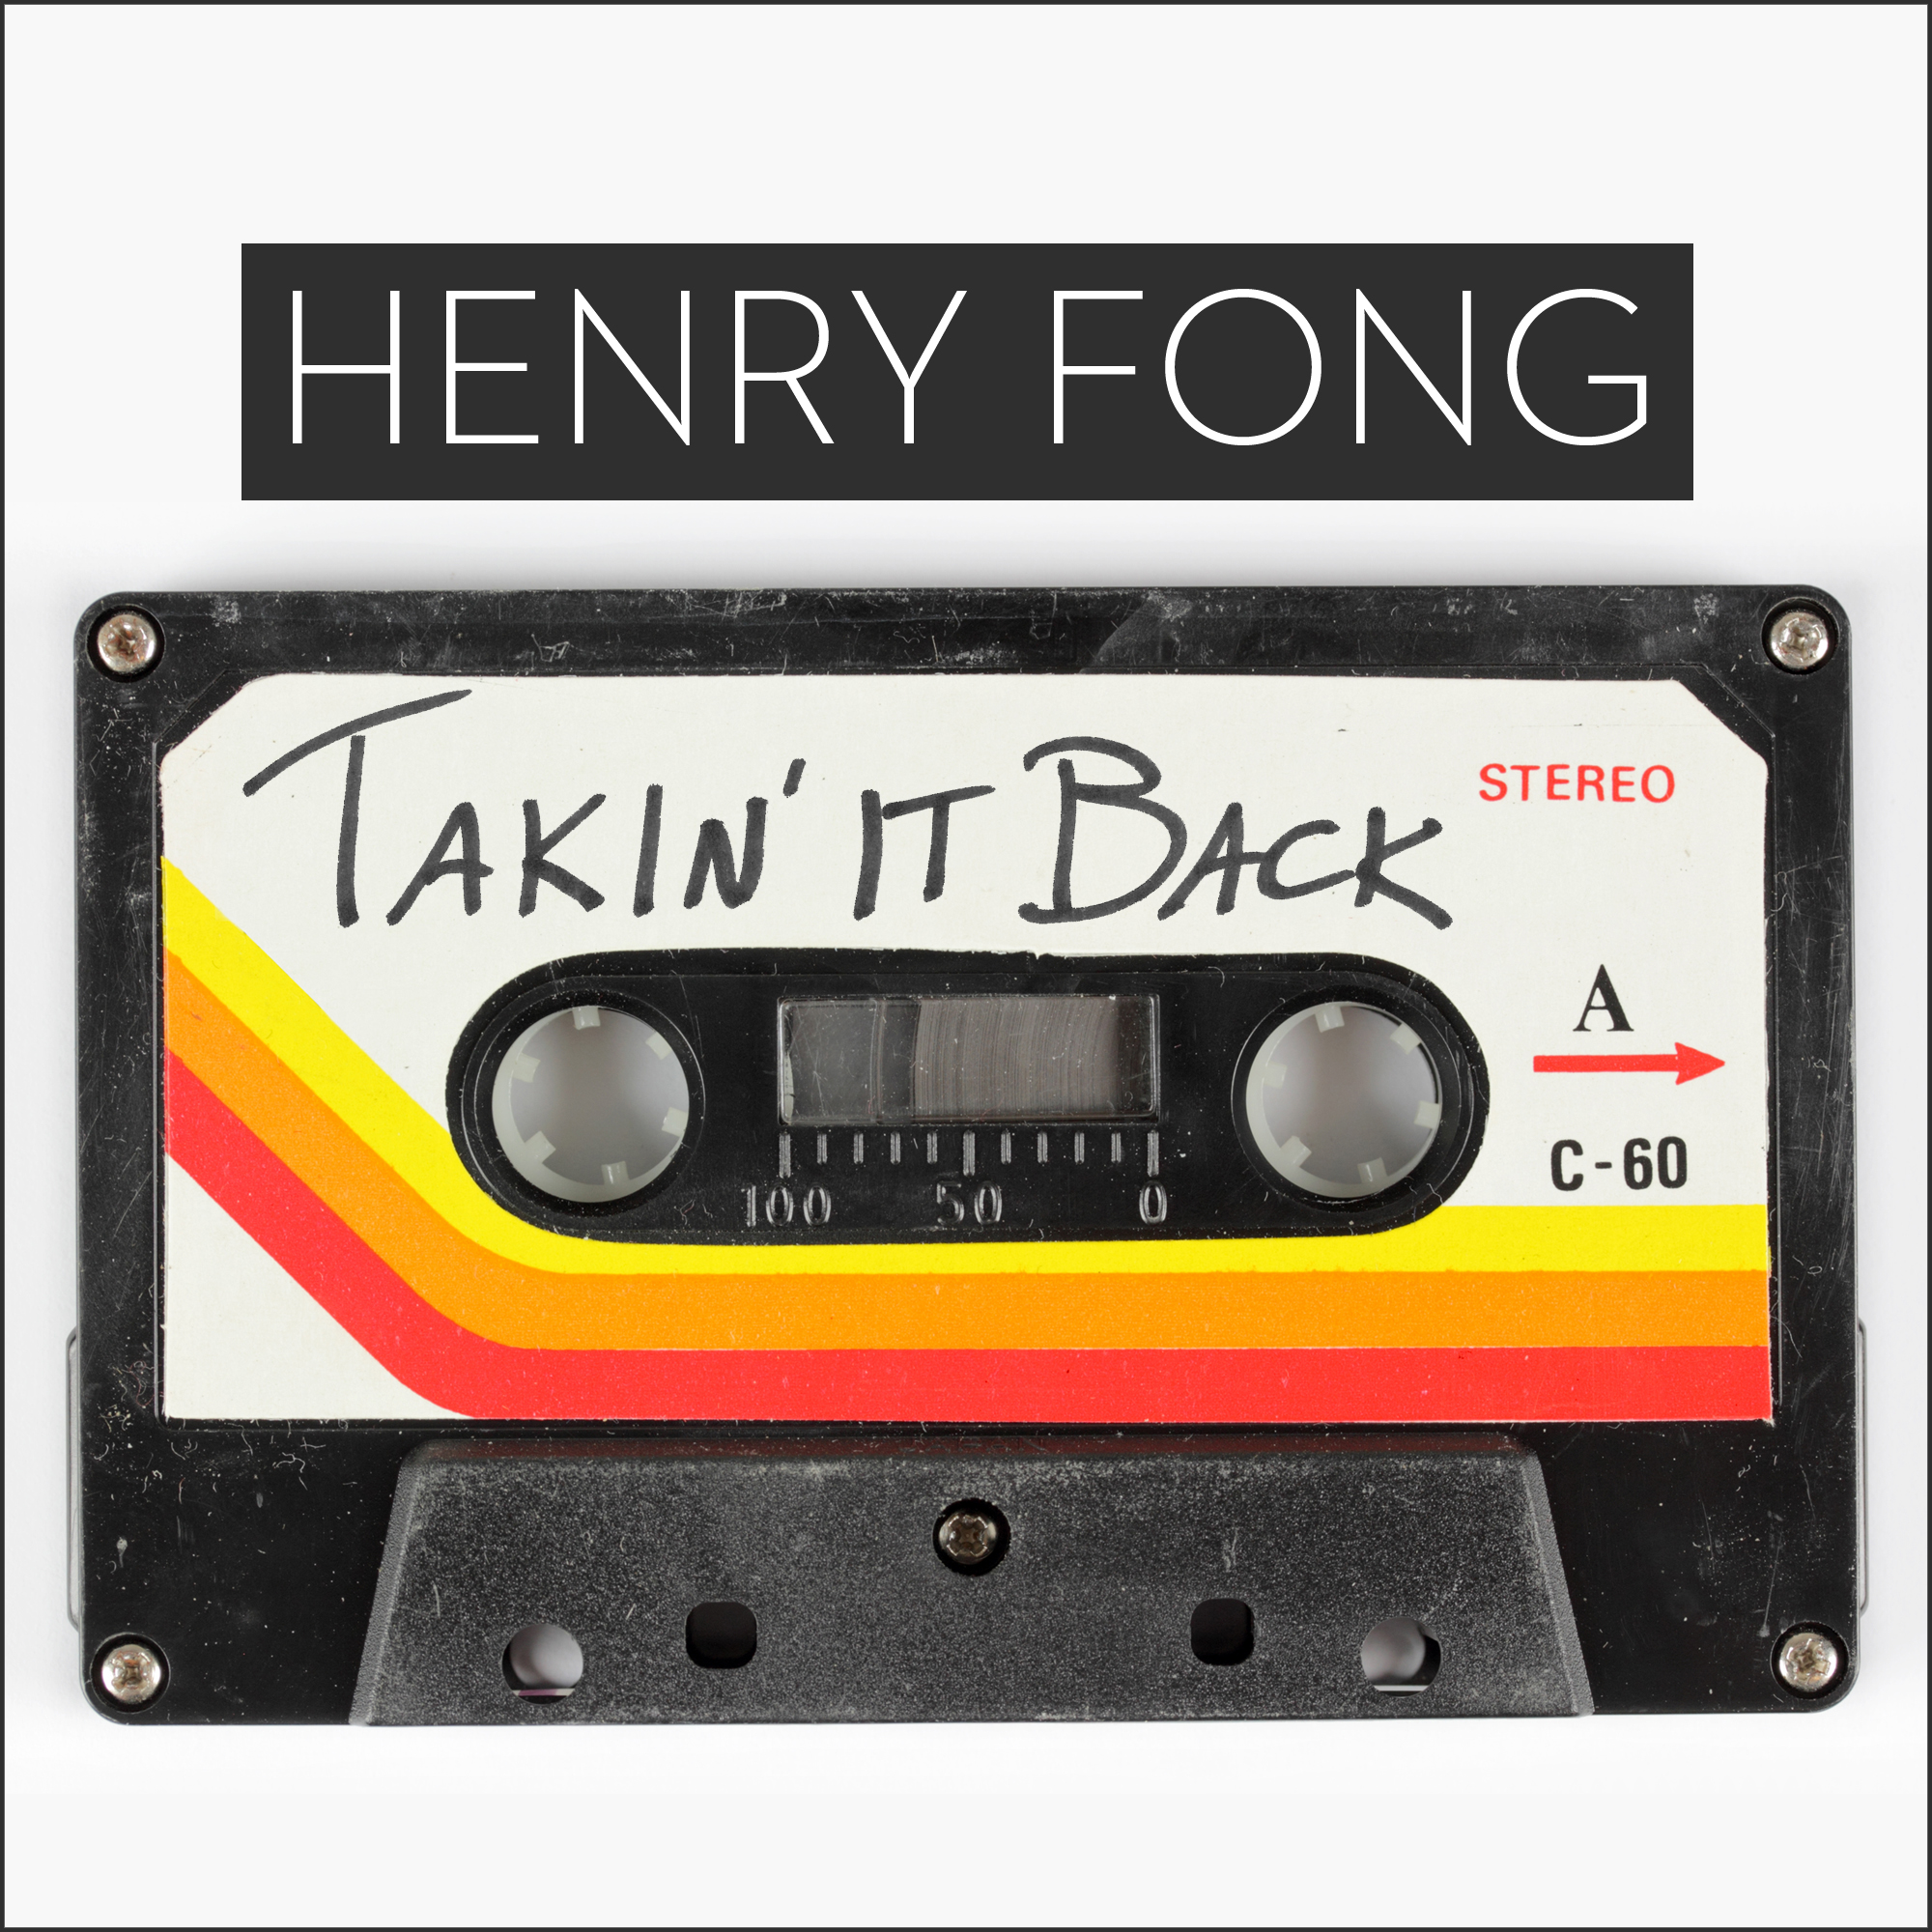 Henry Fong Takin it back